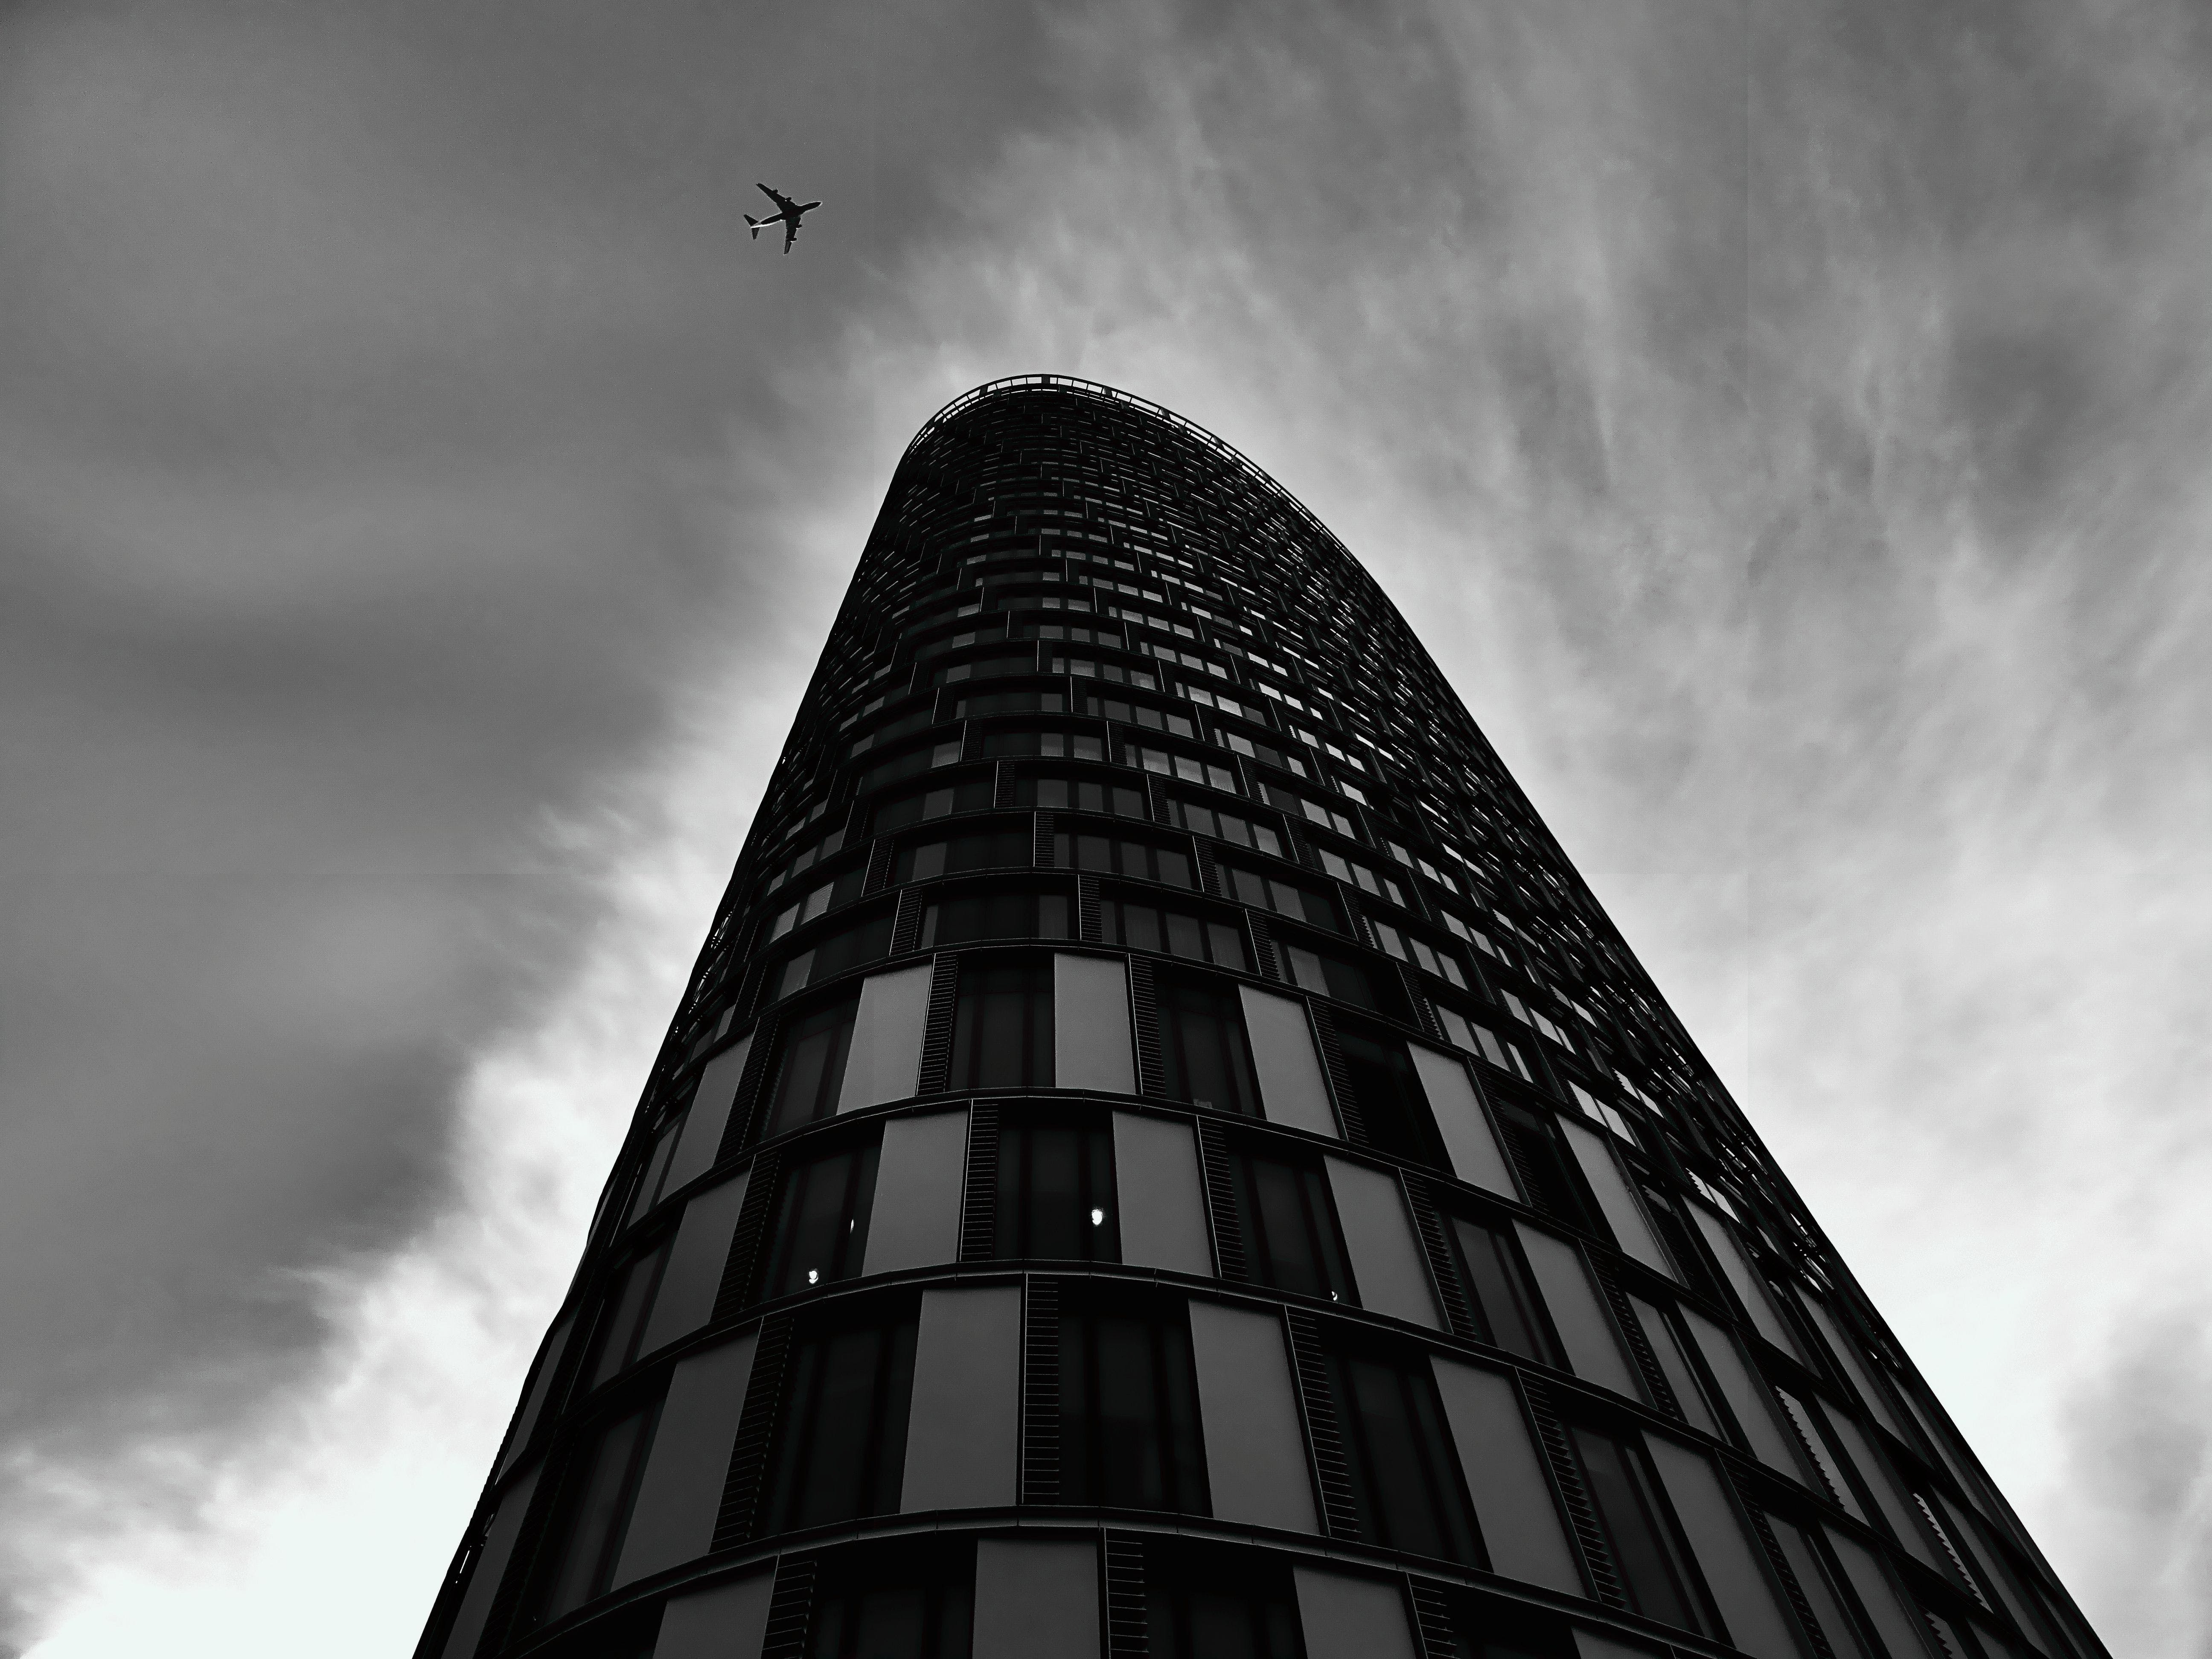 airplane, architecture, black-and-white